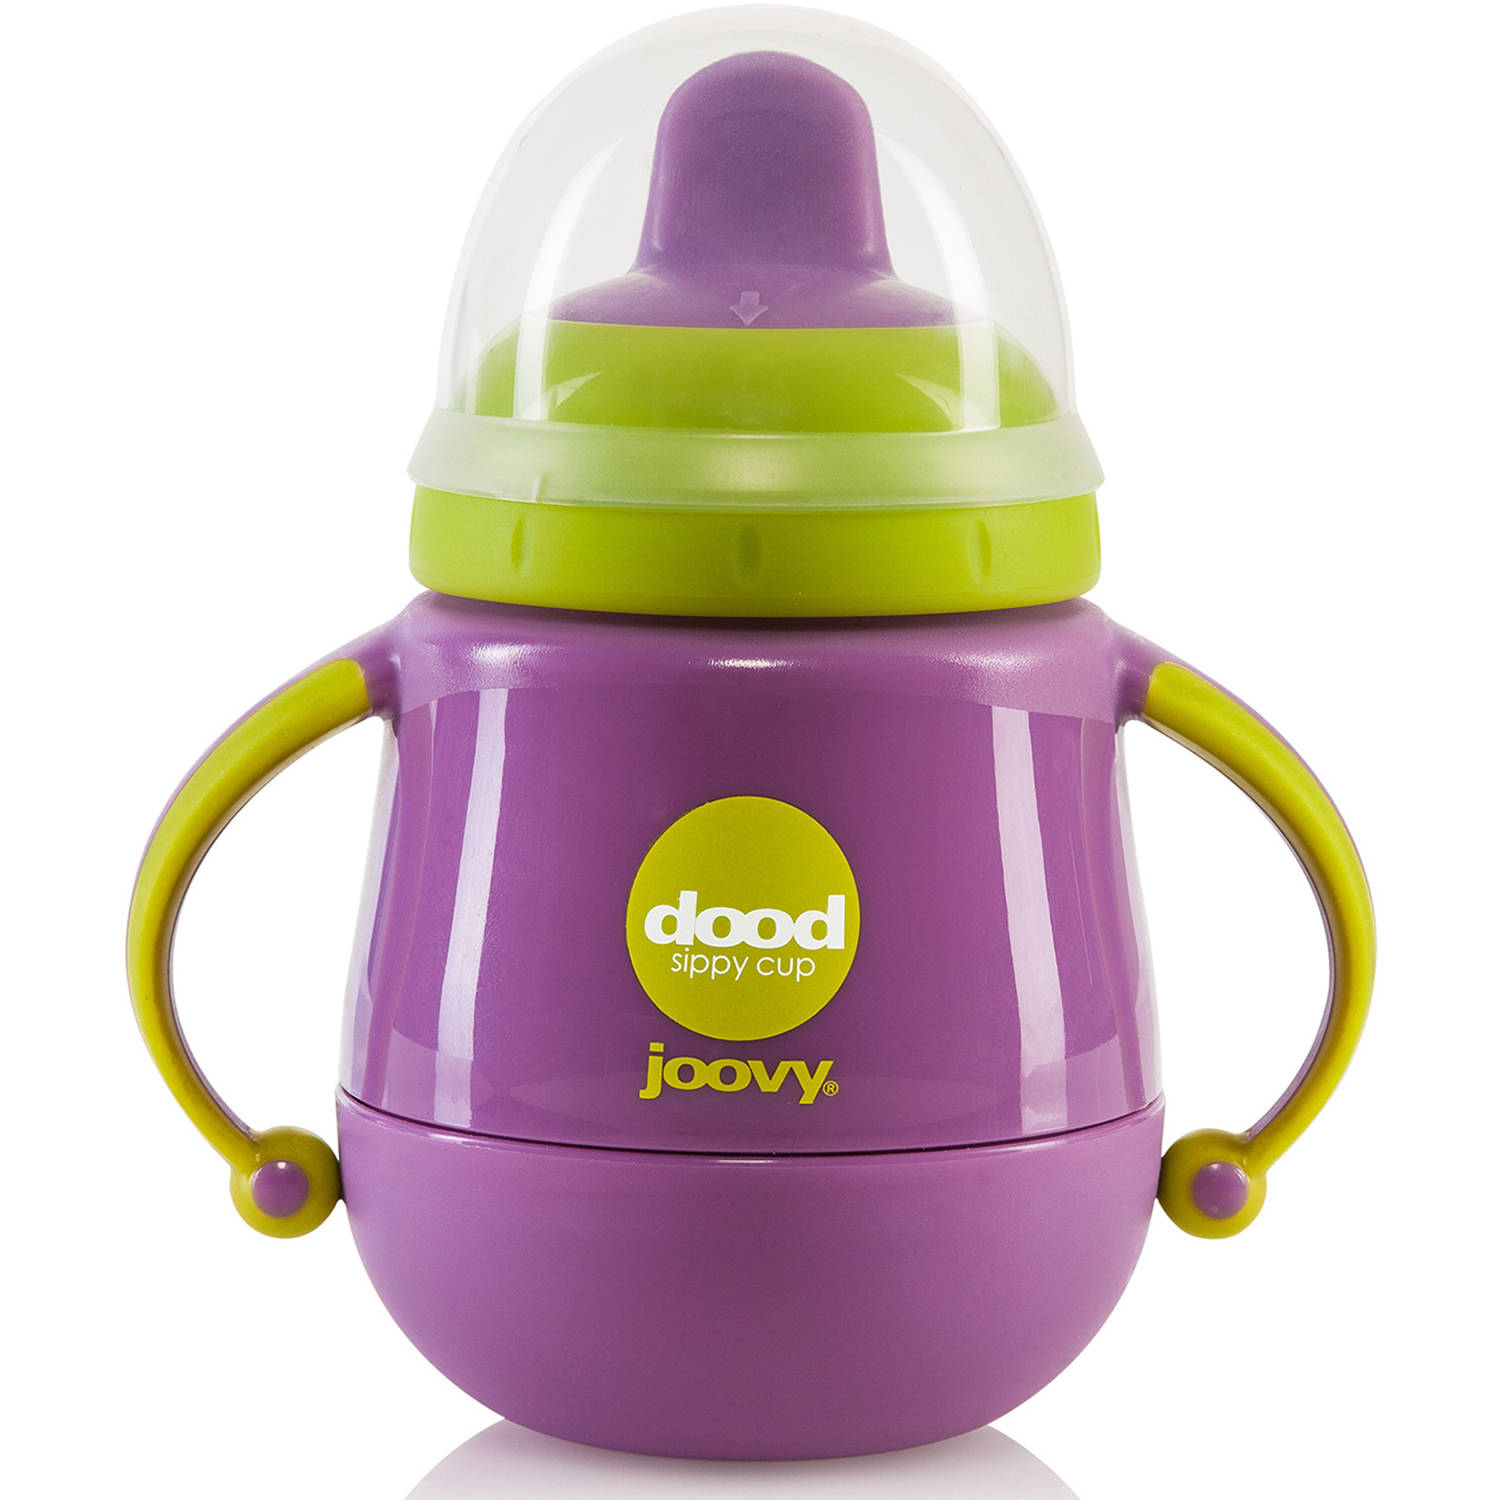 Joovy Dood Soft Spout Trainer Sippy Cup by Joovy